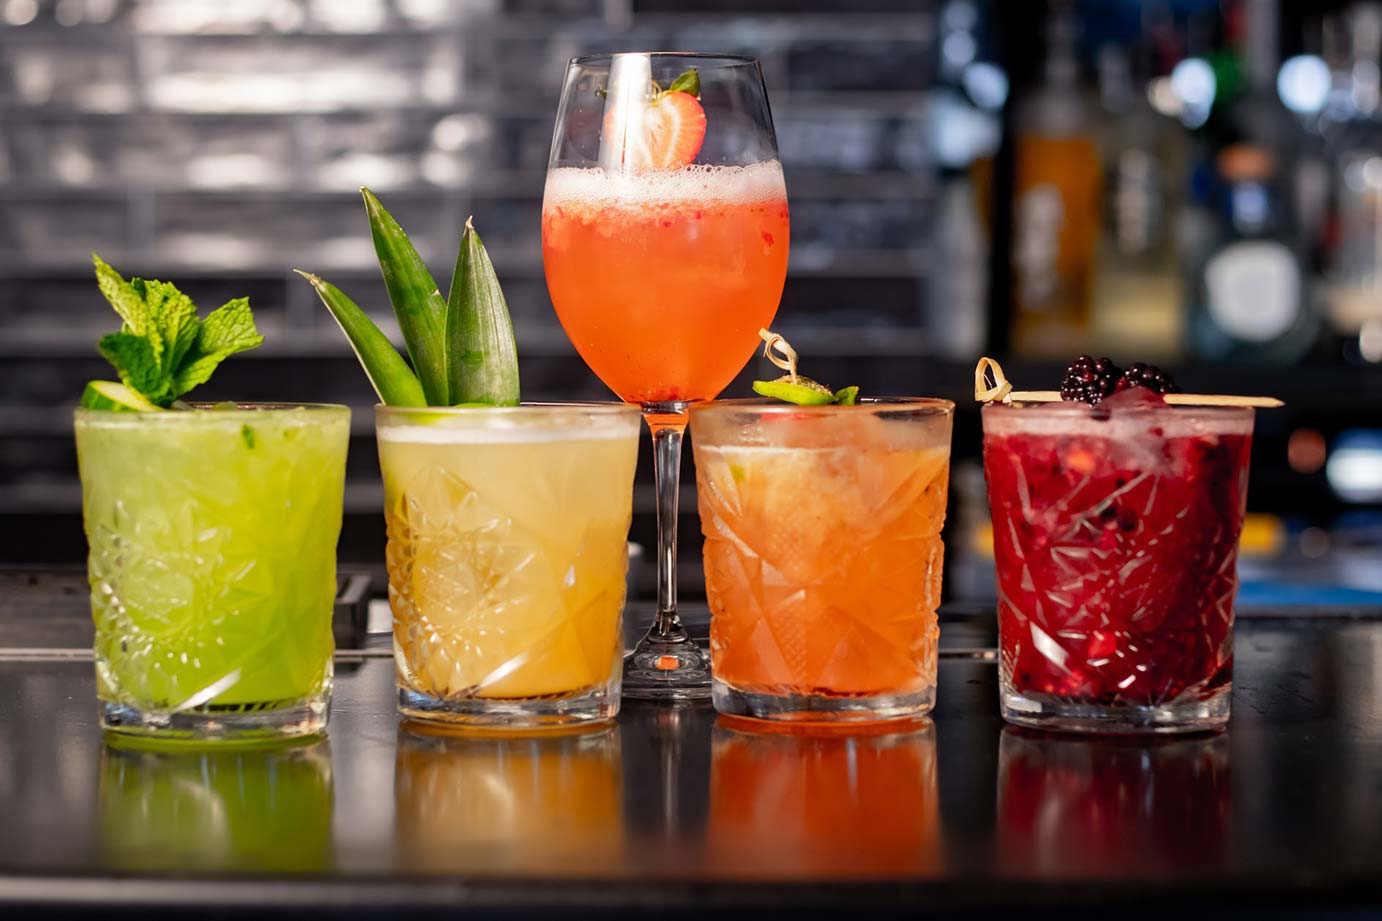 image of a bar with drinks